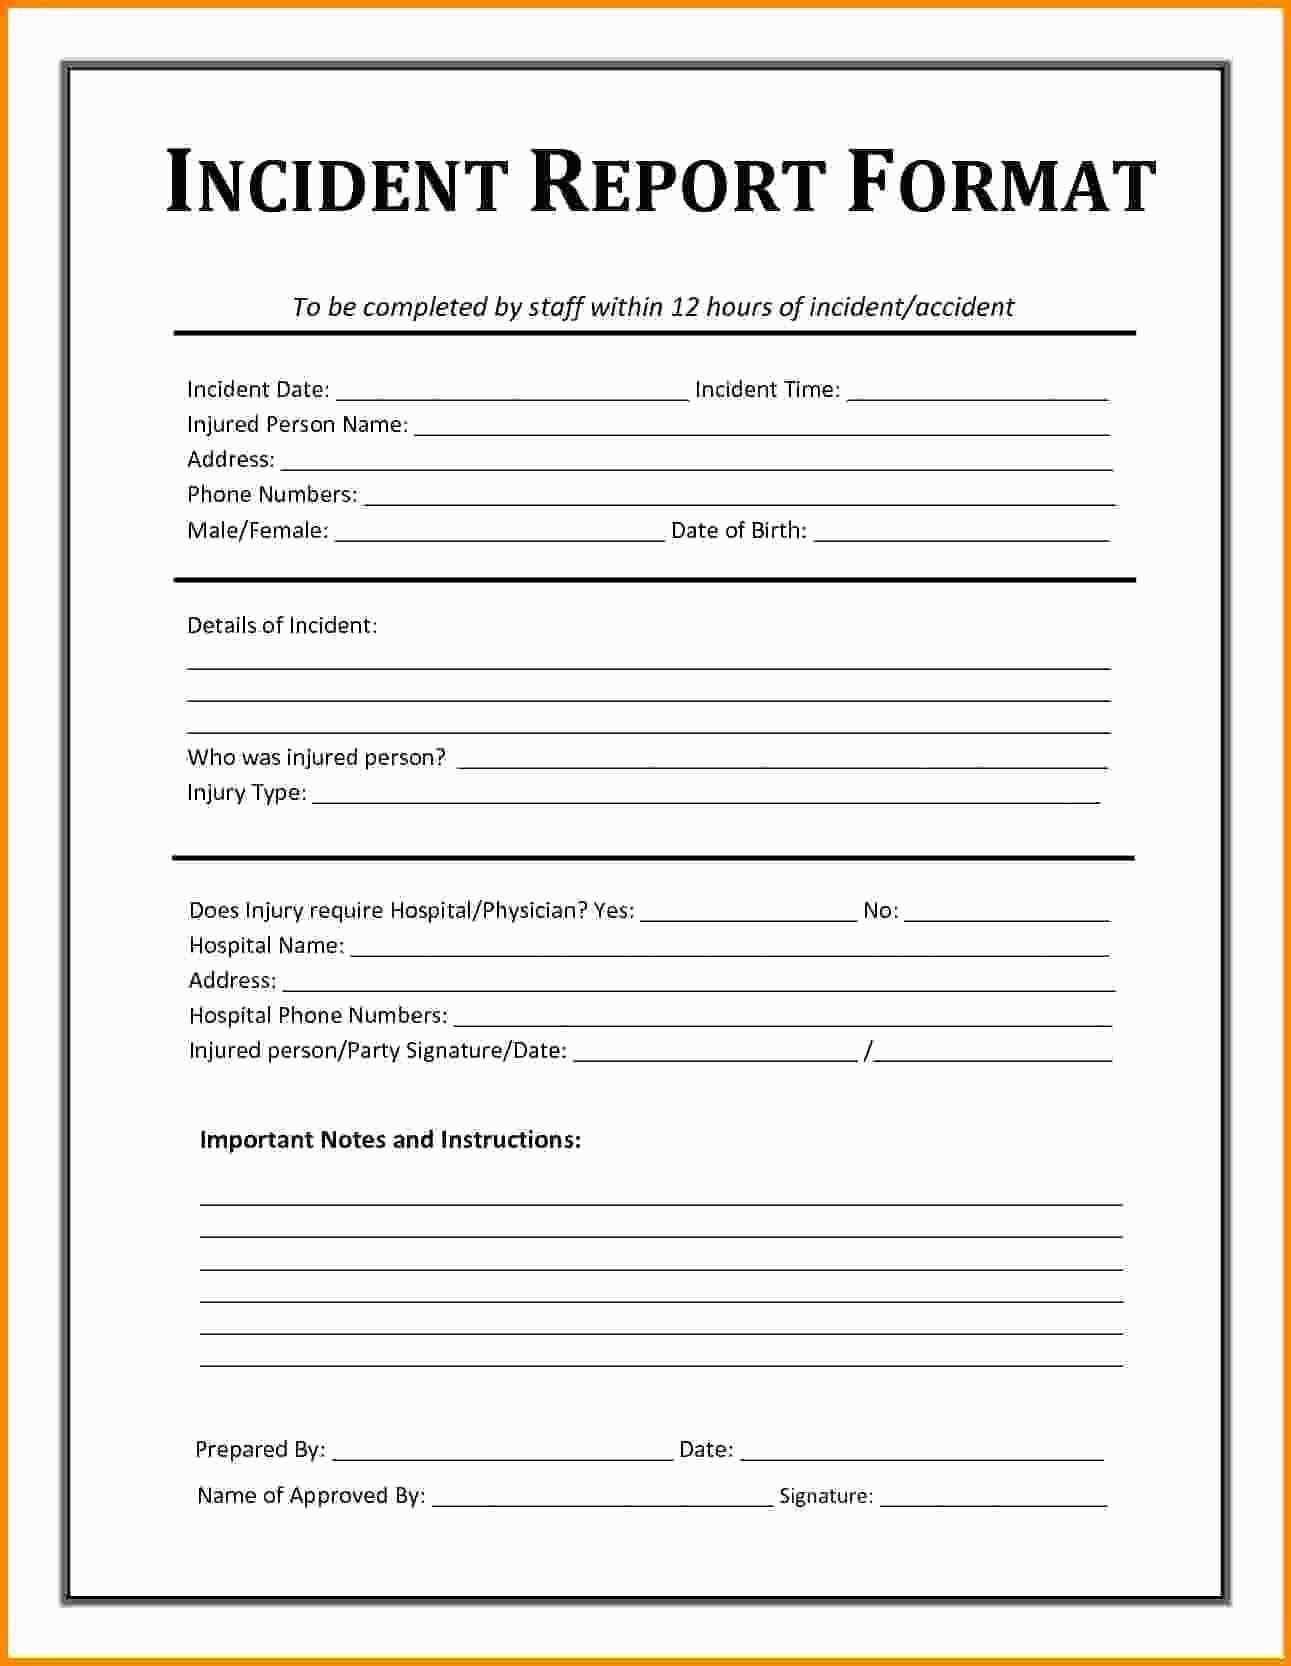 Internal Suspicious Activity Report Template In 2020 Incident